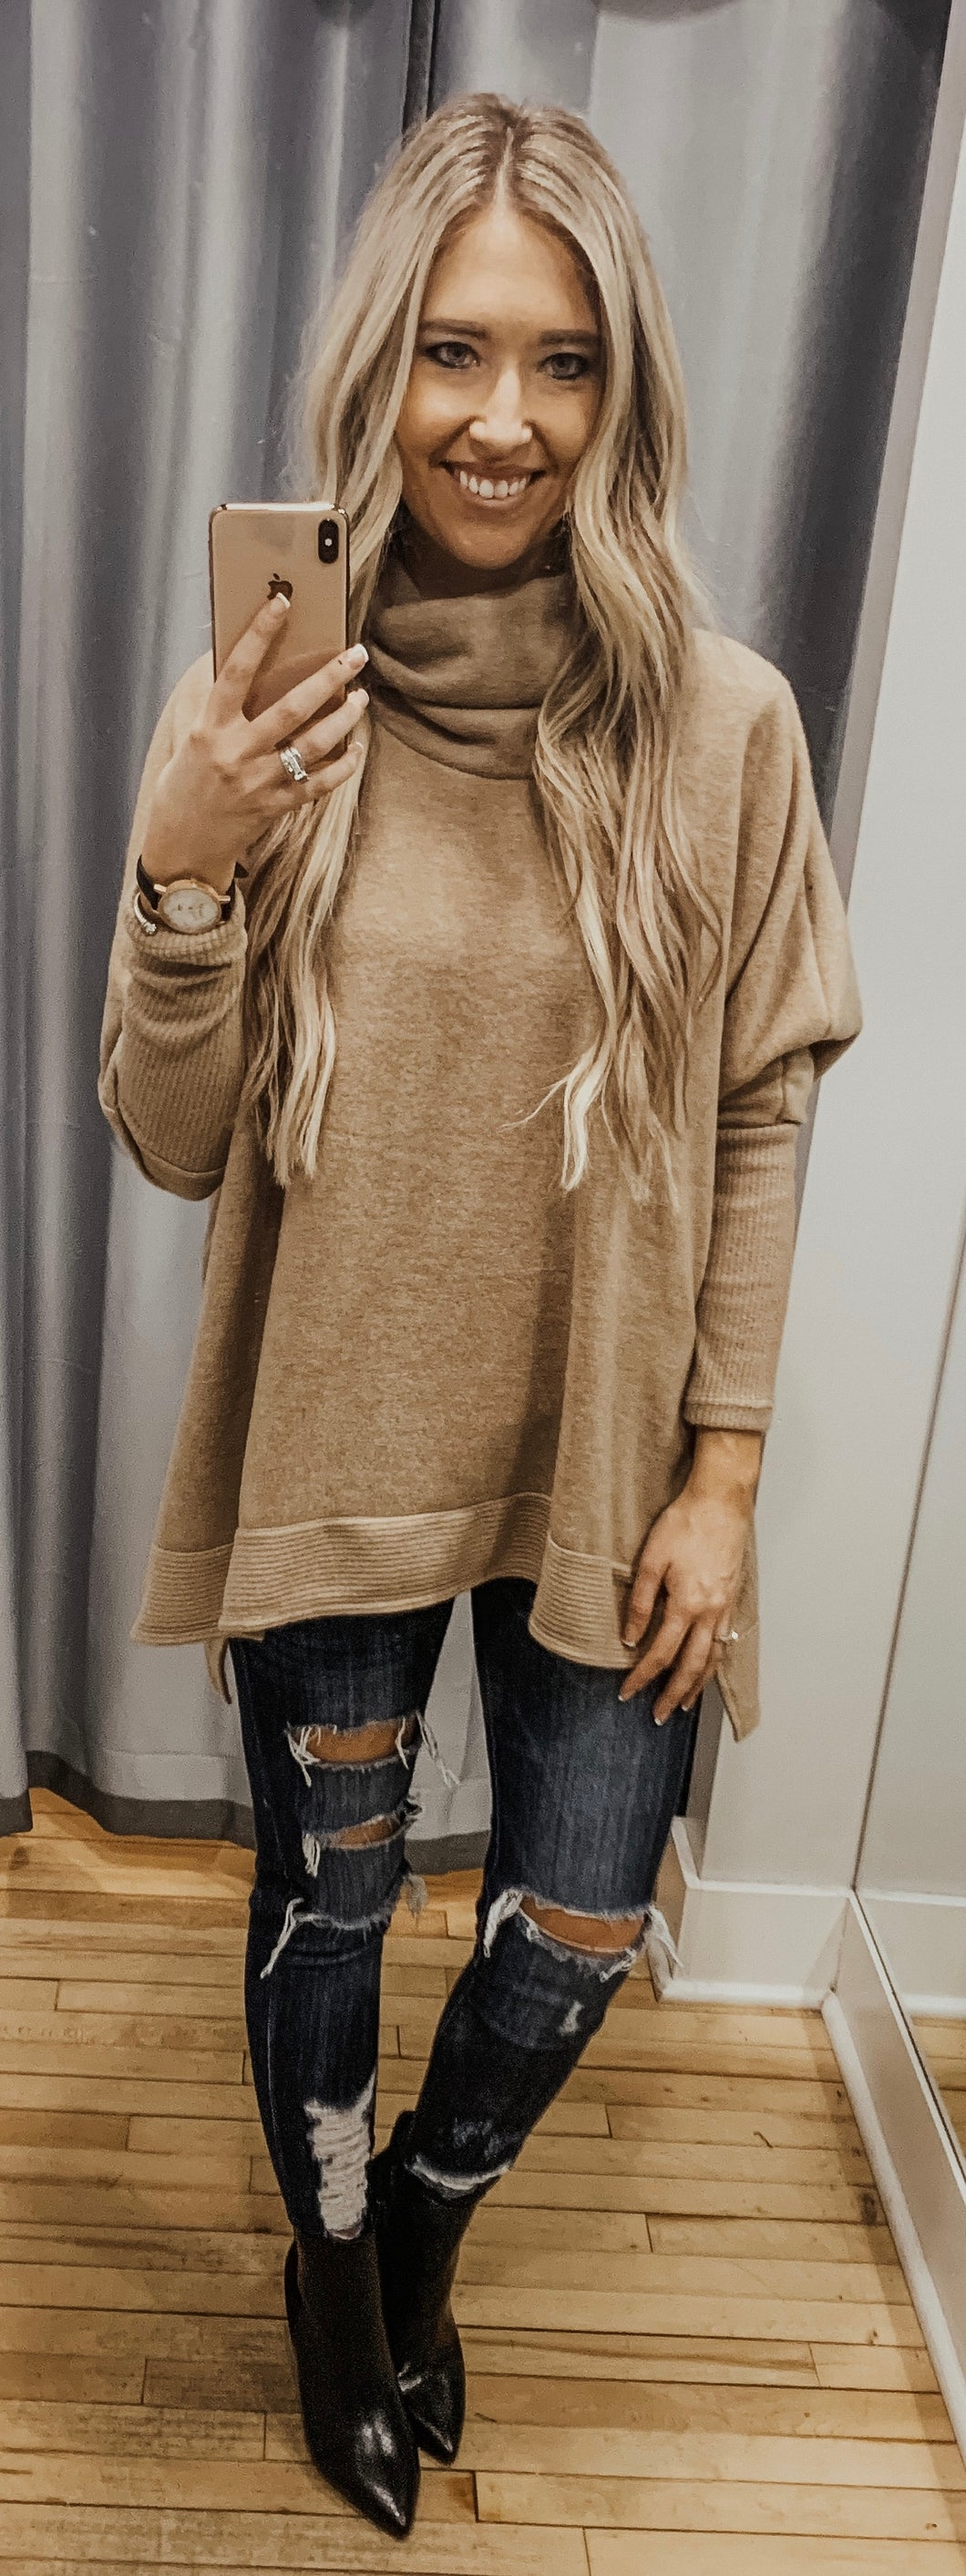 Oatmeal Cowl Turtle Neck Top